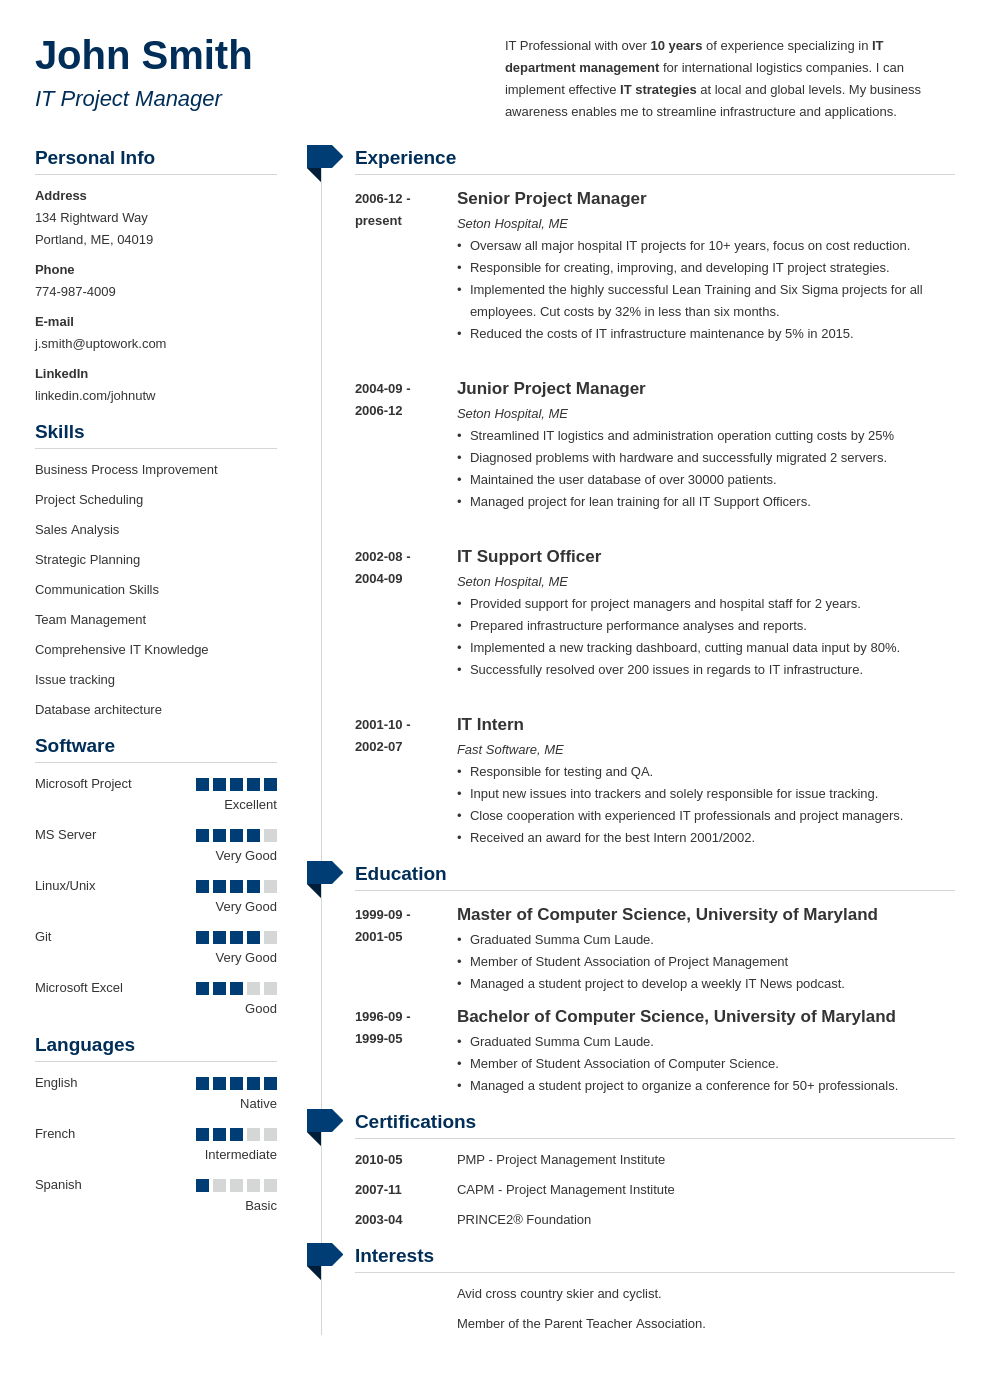 Professional Resume Template Muse (With images) Simple